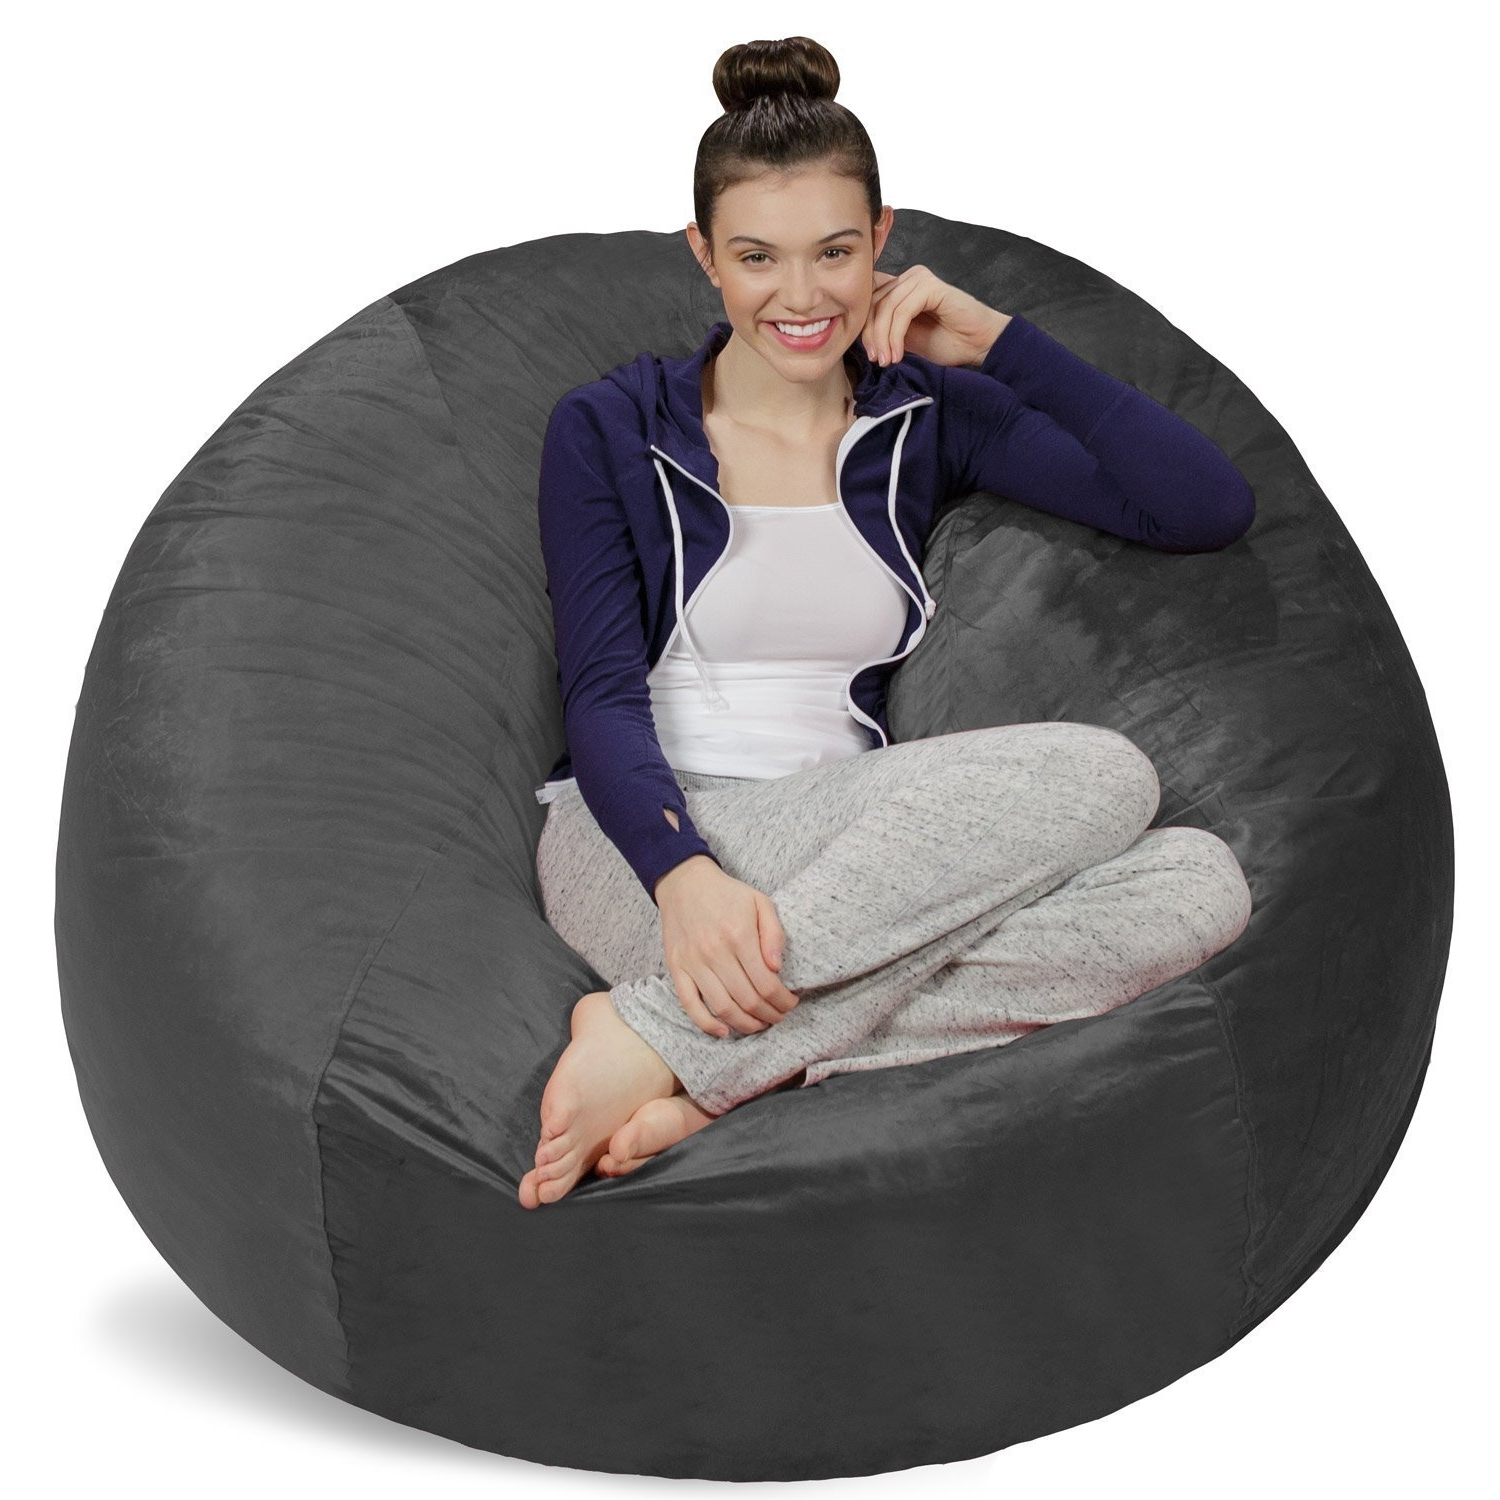 Widely Used Bean Bag Sofas And Chairs Inside Amazon: Sofa Sack – Bean Bags Bean Bag Chair, 5 Feet, Charcoal (View 6 of 15)